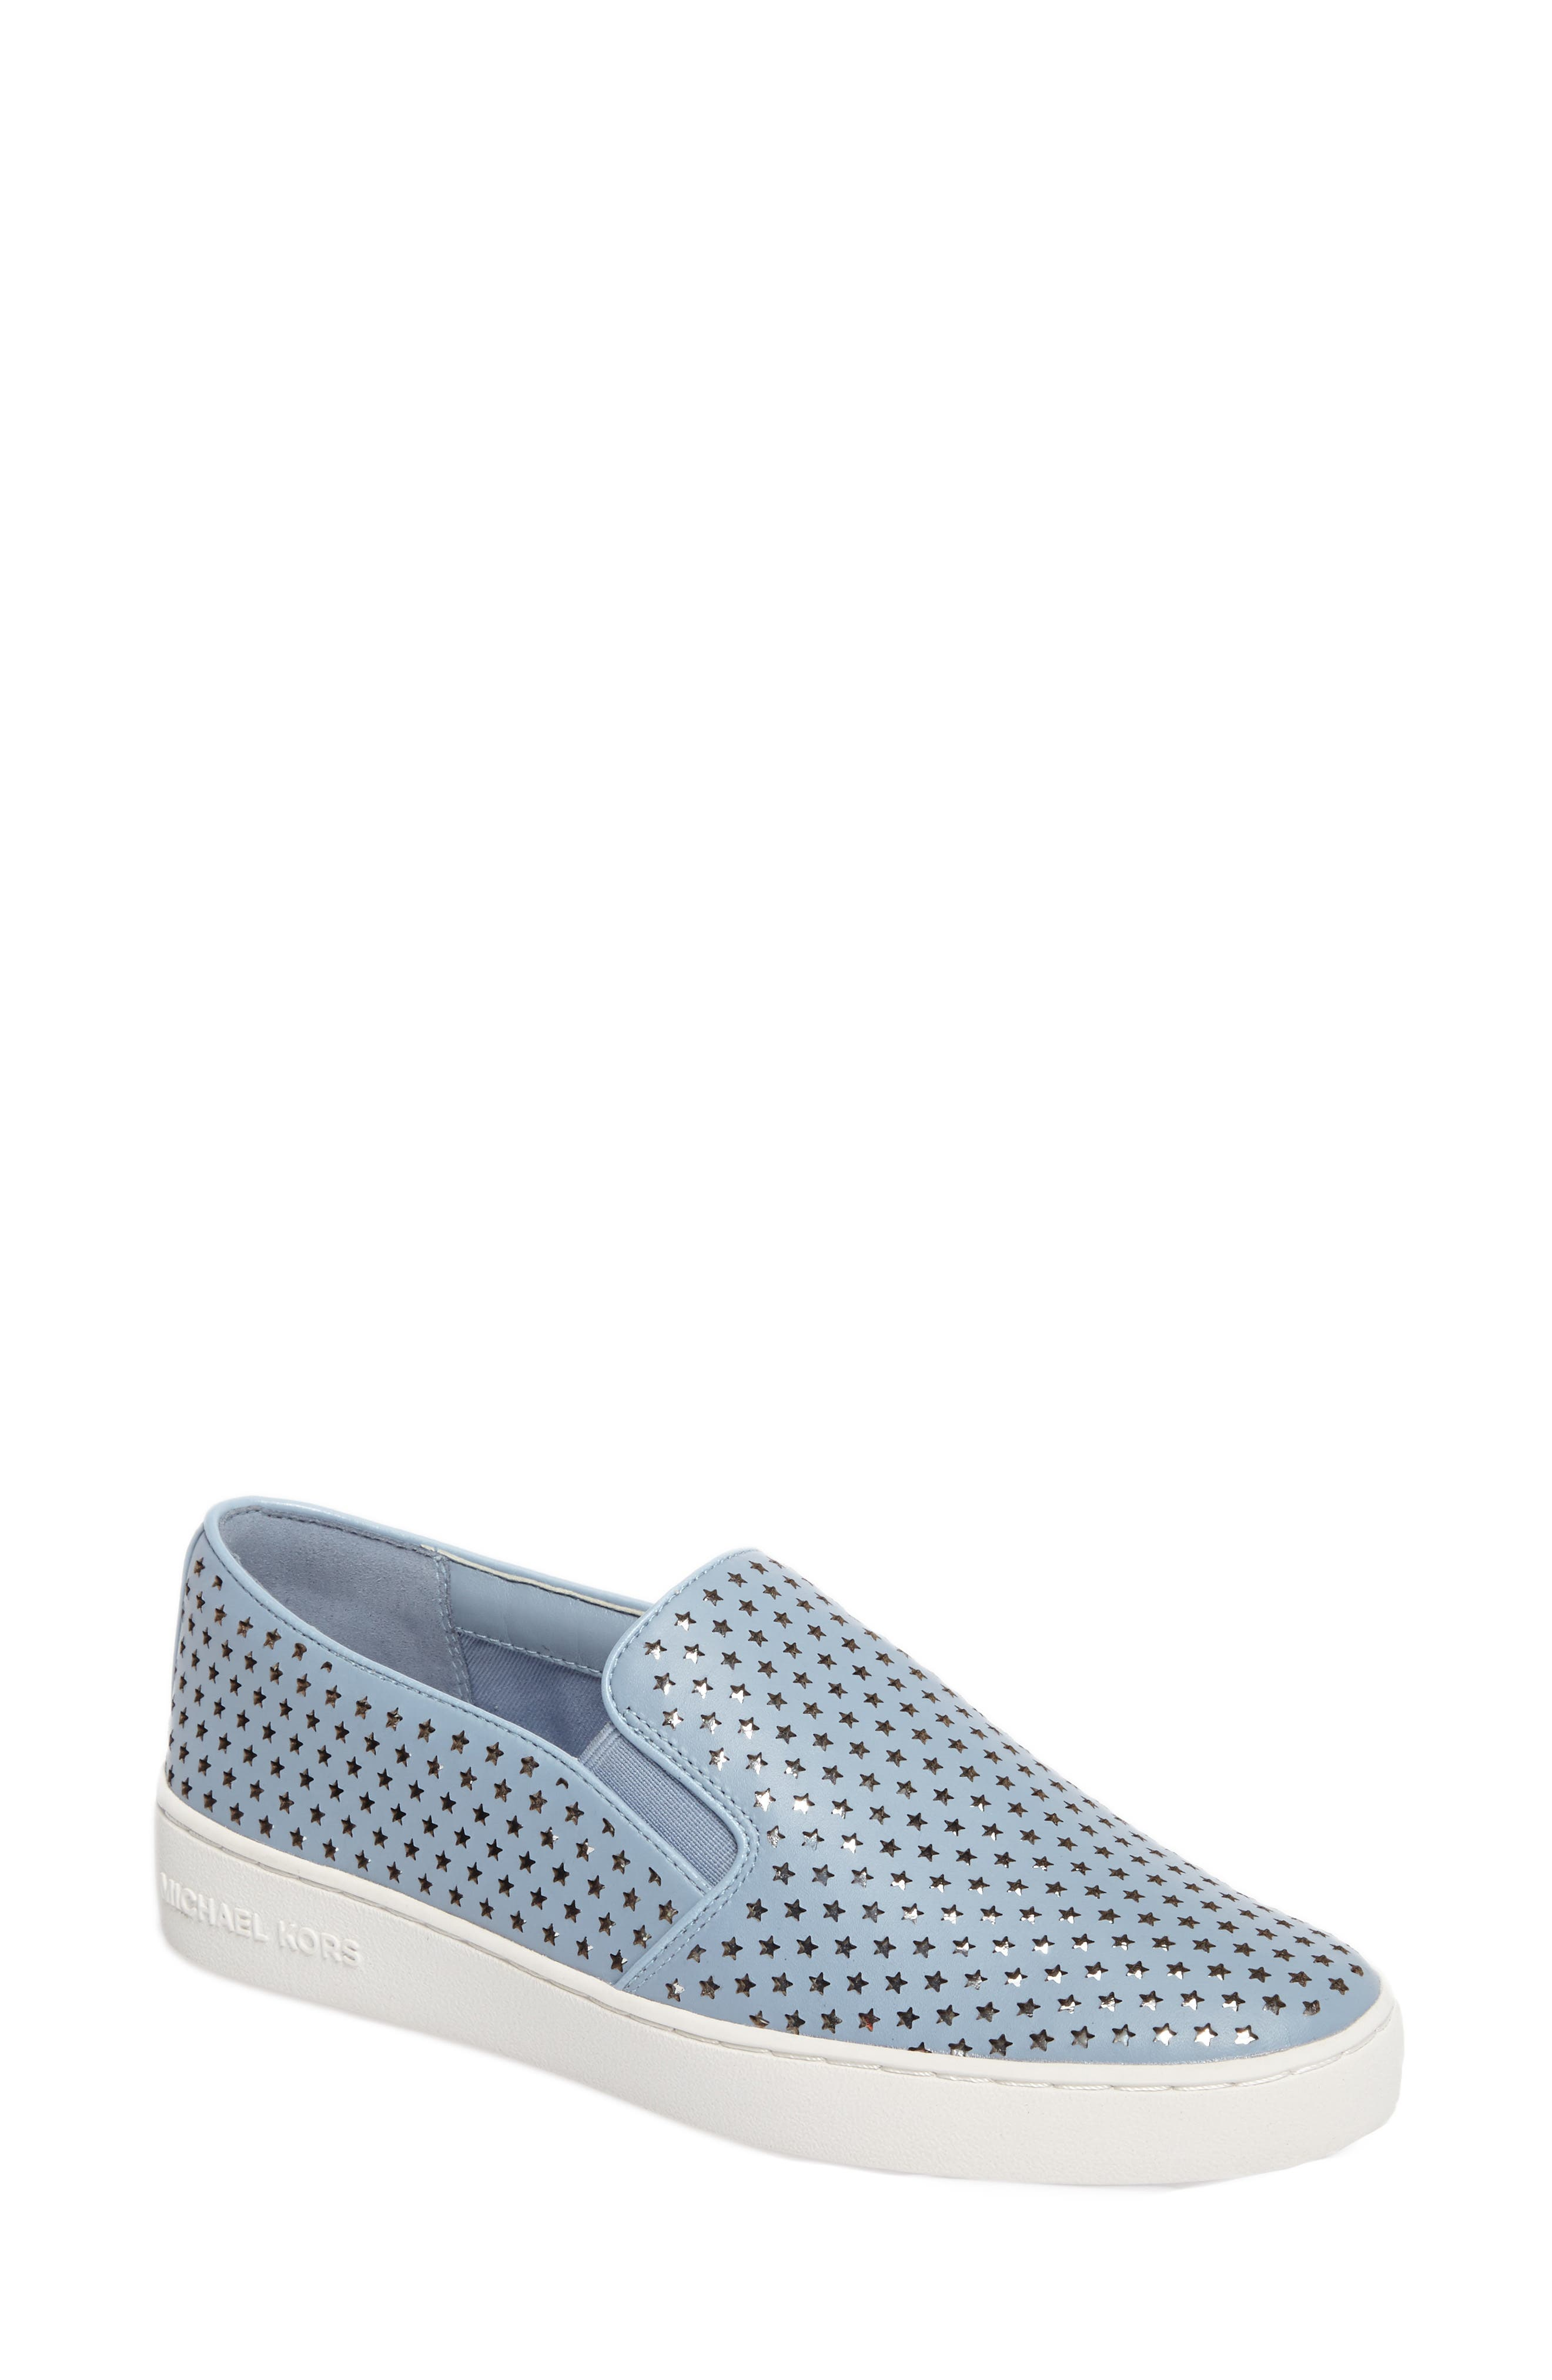 Keaton Slip-On Sneaker,                             Main thumbnail 1, color,                             Pale Blue Perforated Star